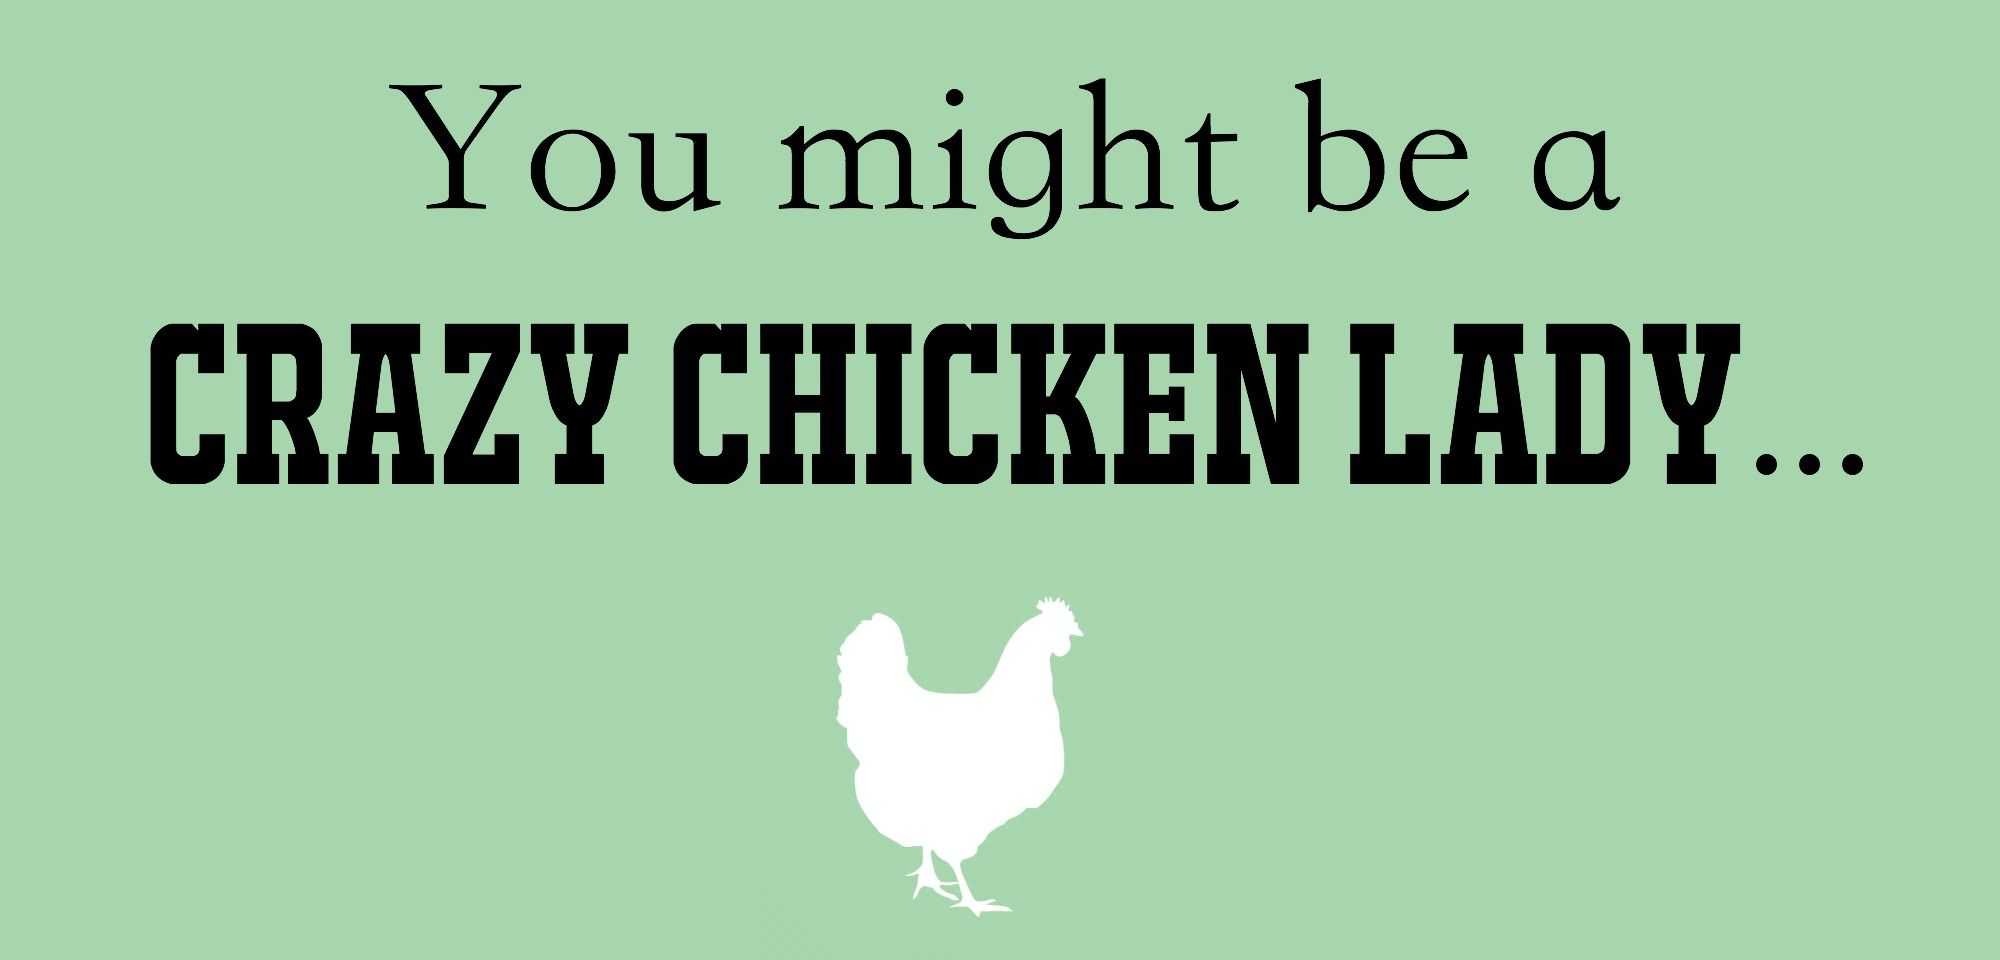 Quotes About Raising Chickens: You Might Be A Crazy Chicken Lady If